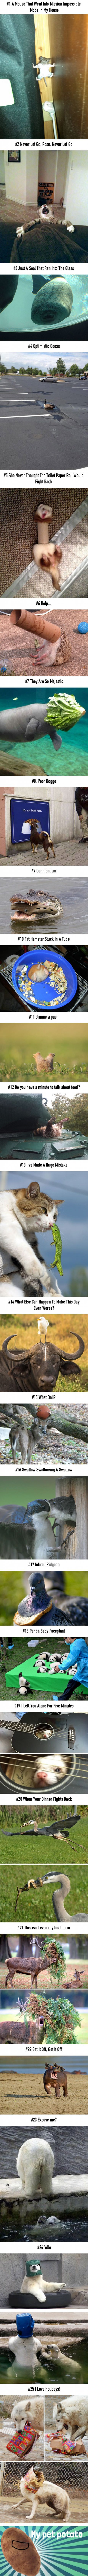 25 Of The Funniest Animal Fails Ever